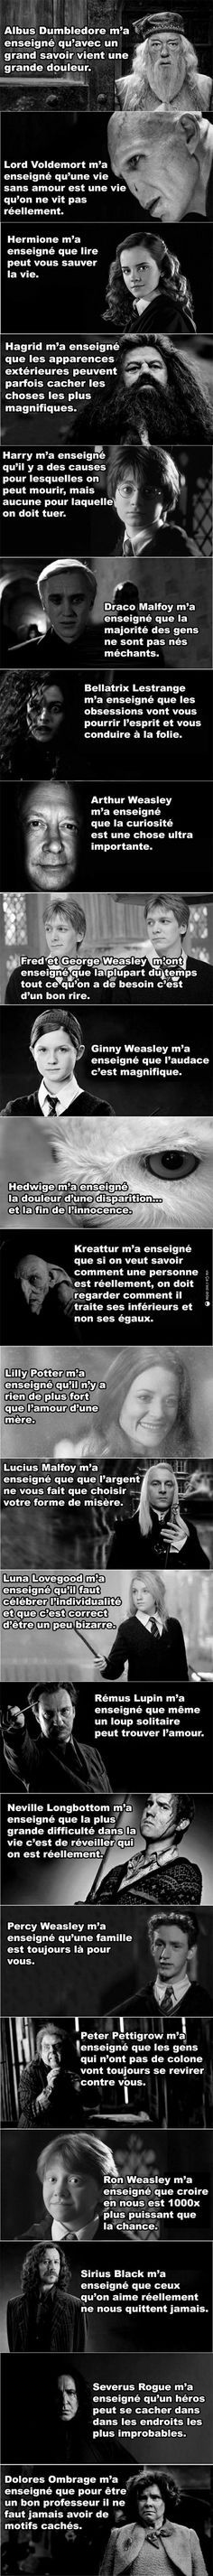 Ideas for memes funny life harry potter Harry Potter Film, Harry Potter Anime, Harry Potter Universal, Harry Potter World, Jarry Potter, Rage, Quebec, Movies And Series, Life Humor